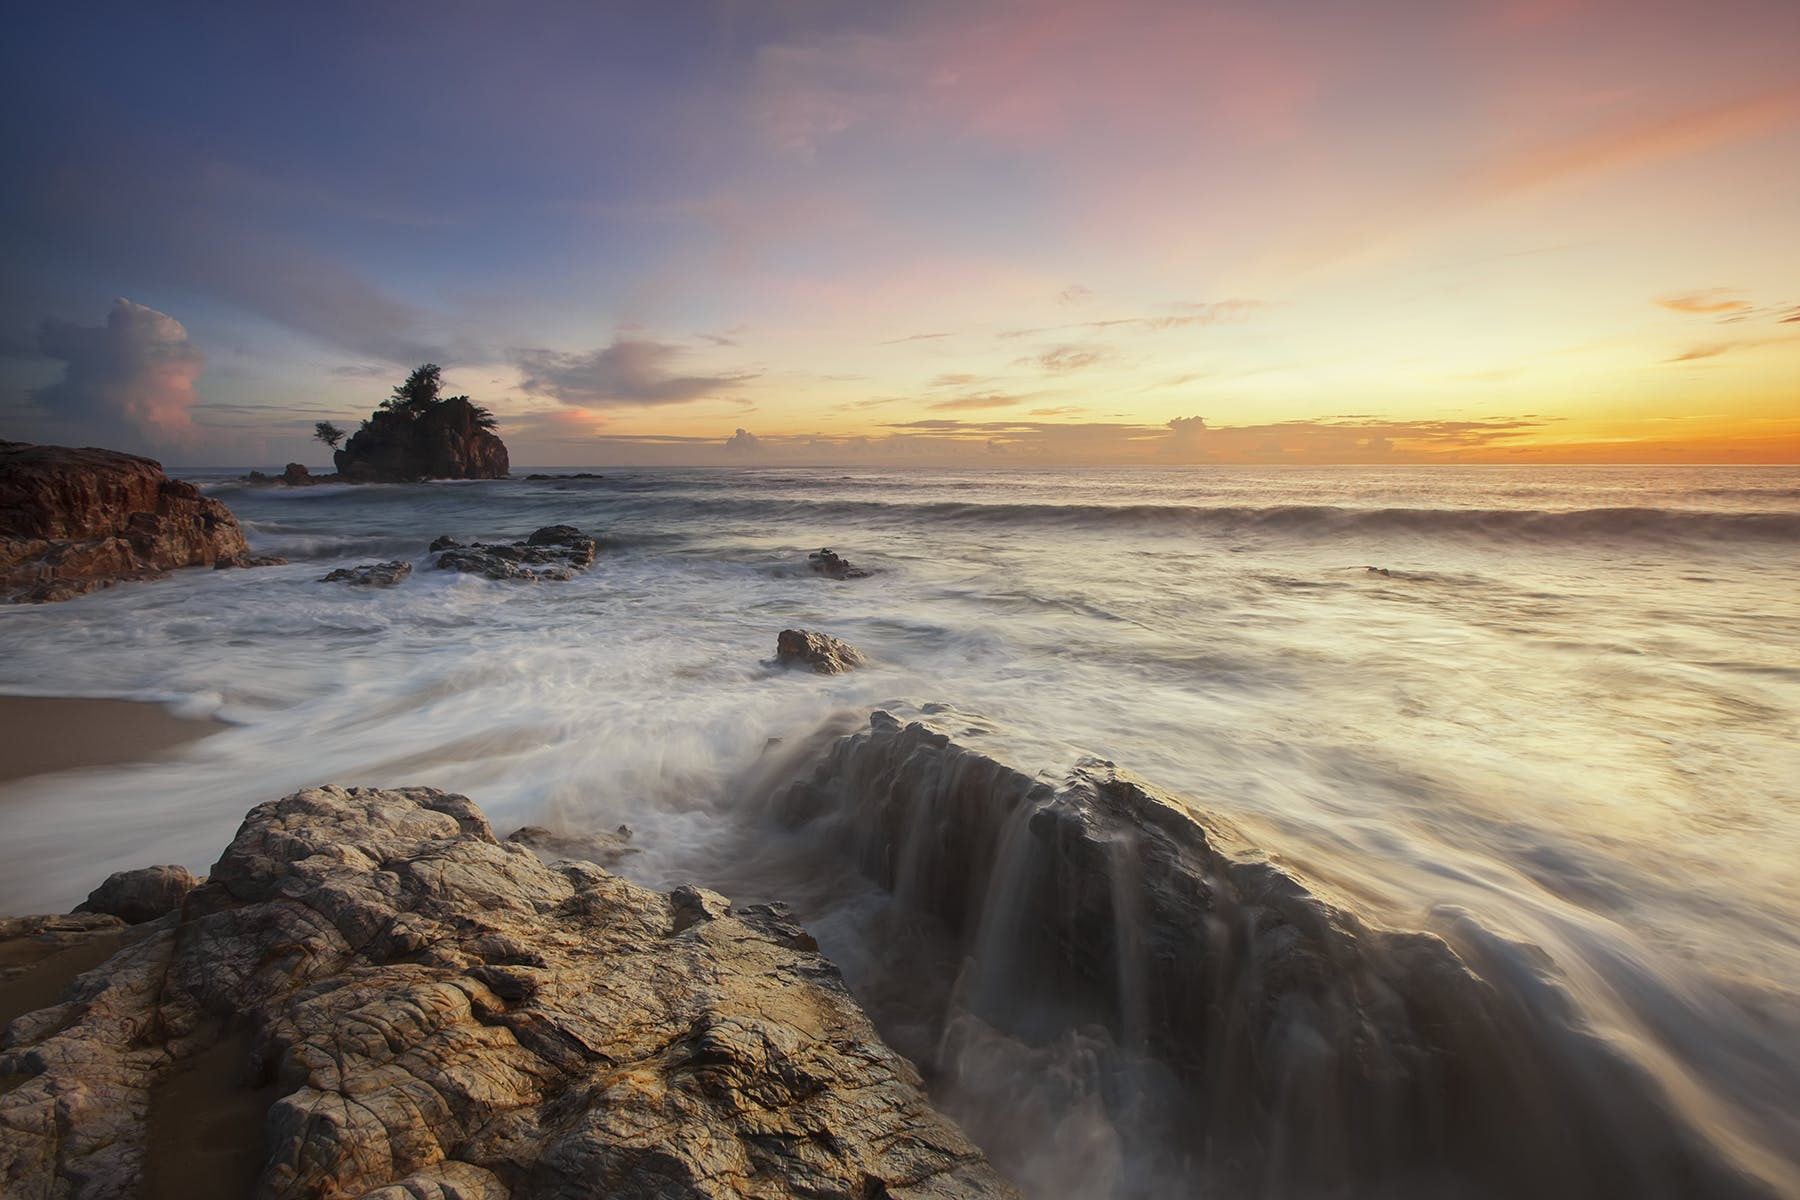 Brown and Grey Rock Near Sea during Sunrise